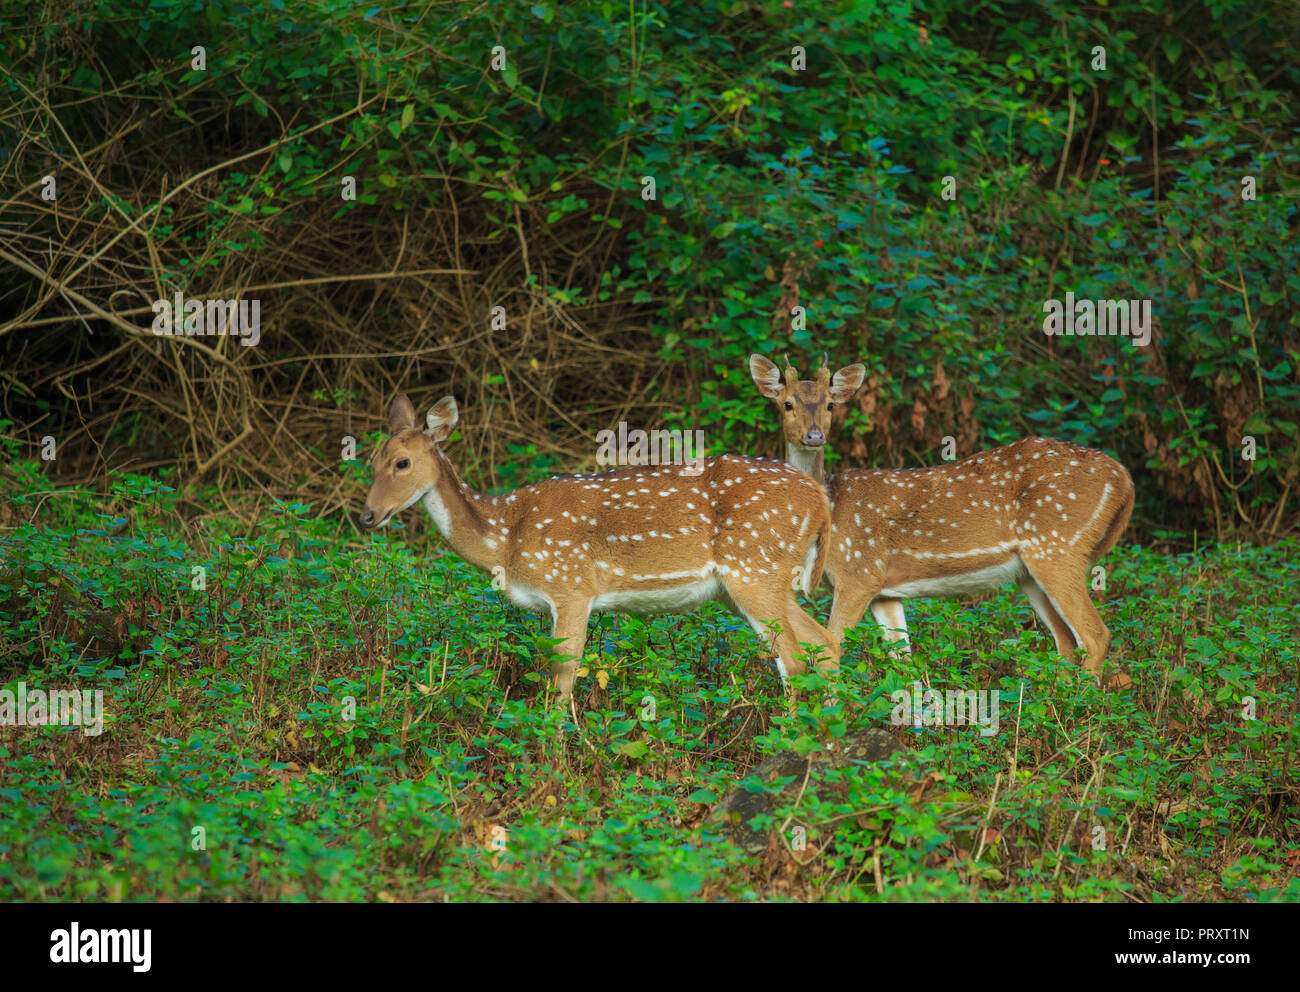 Spotted Deer - at BR Hills Sanctuary (Karnataka, India) - Stock Image